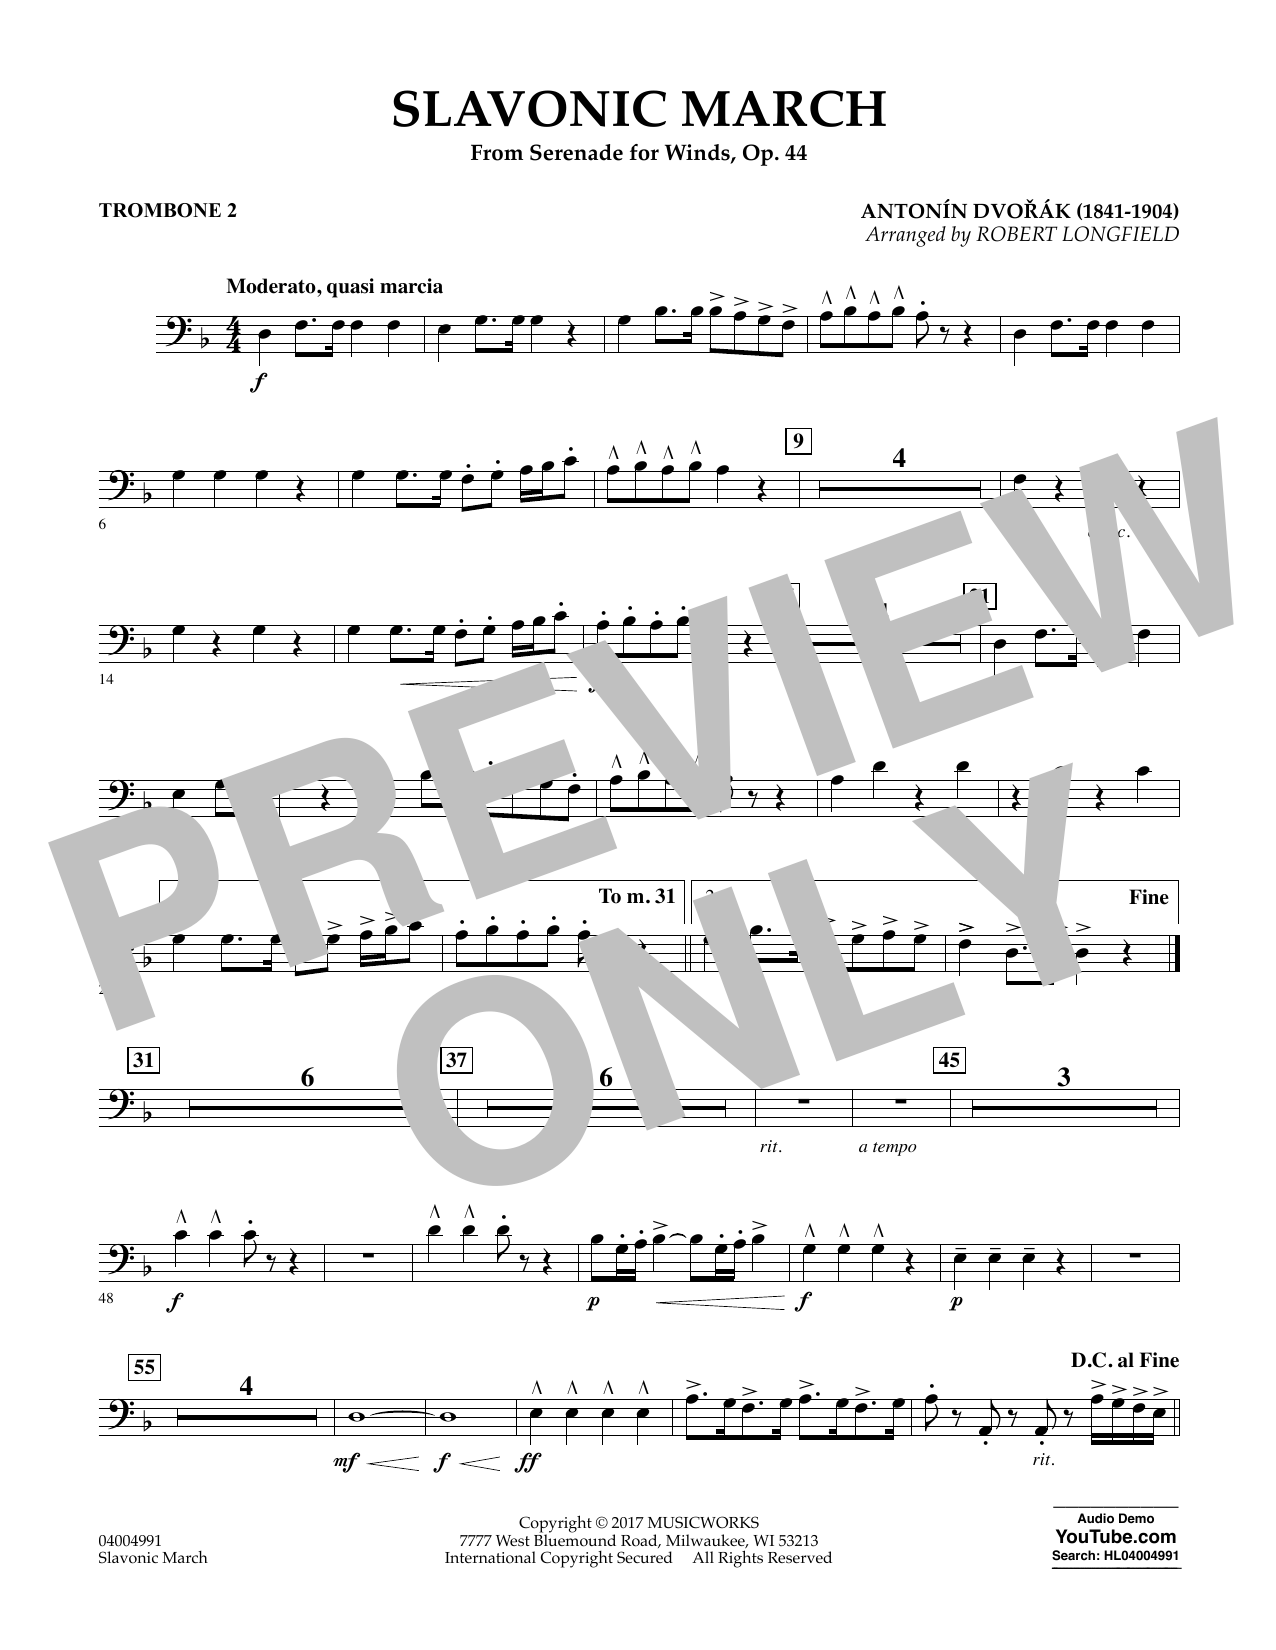 Slavonic March (from Serenade for Winds, Op. 44) - Trombone 2 Sheet Music